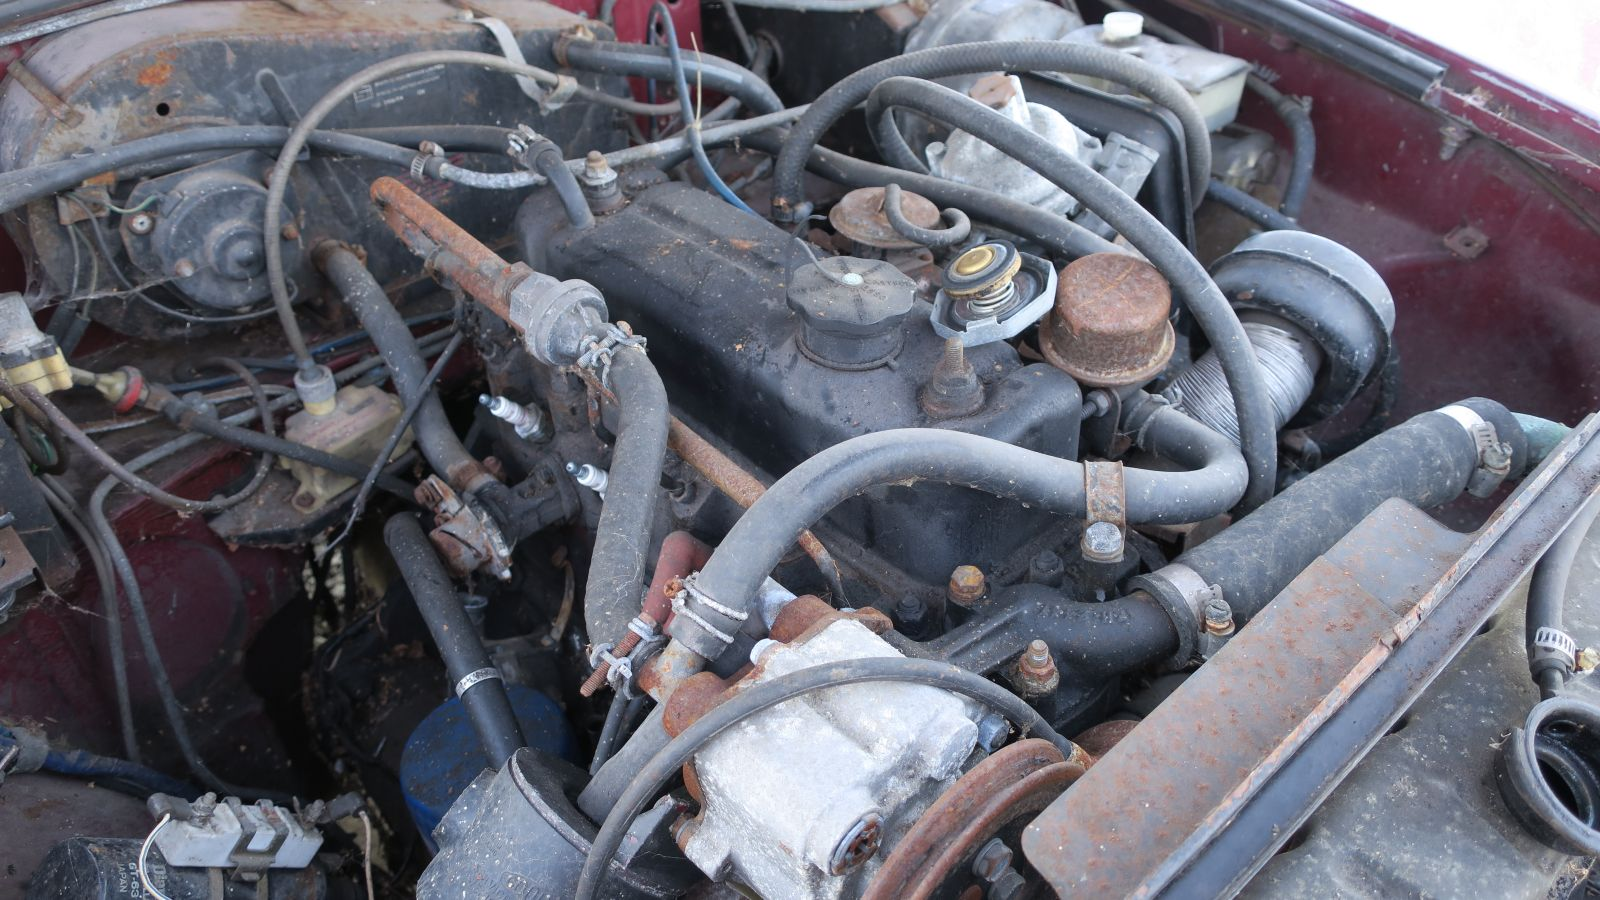 hight resolution of 1976 mg mgb in california wrecking yard engine 2017 murilee martin the